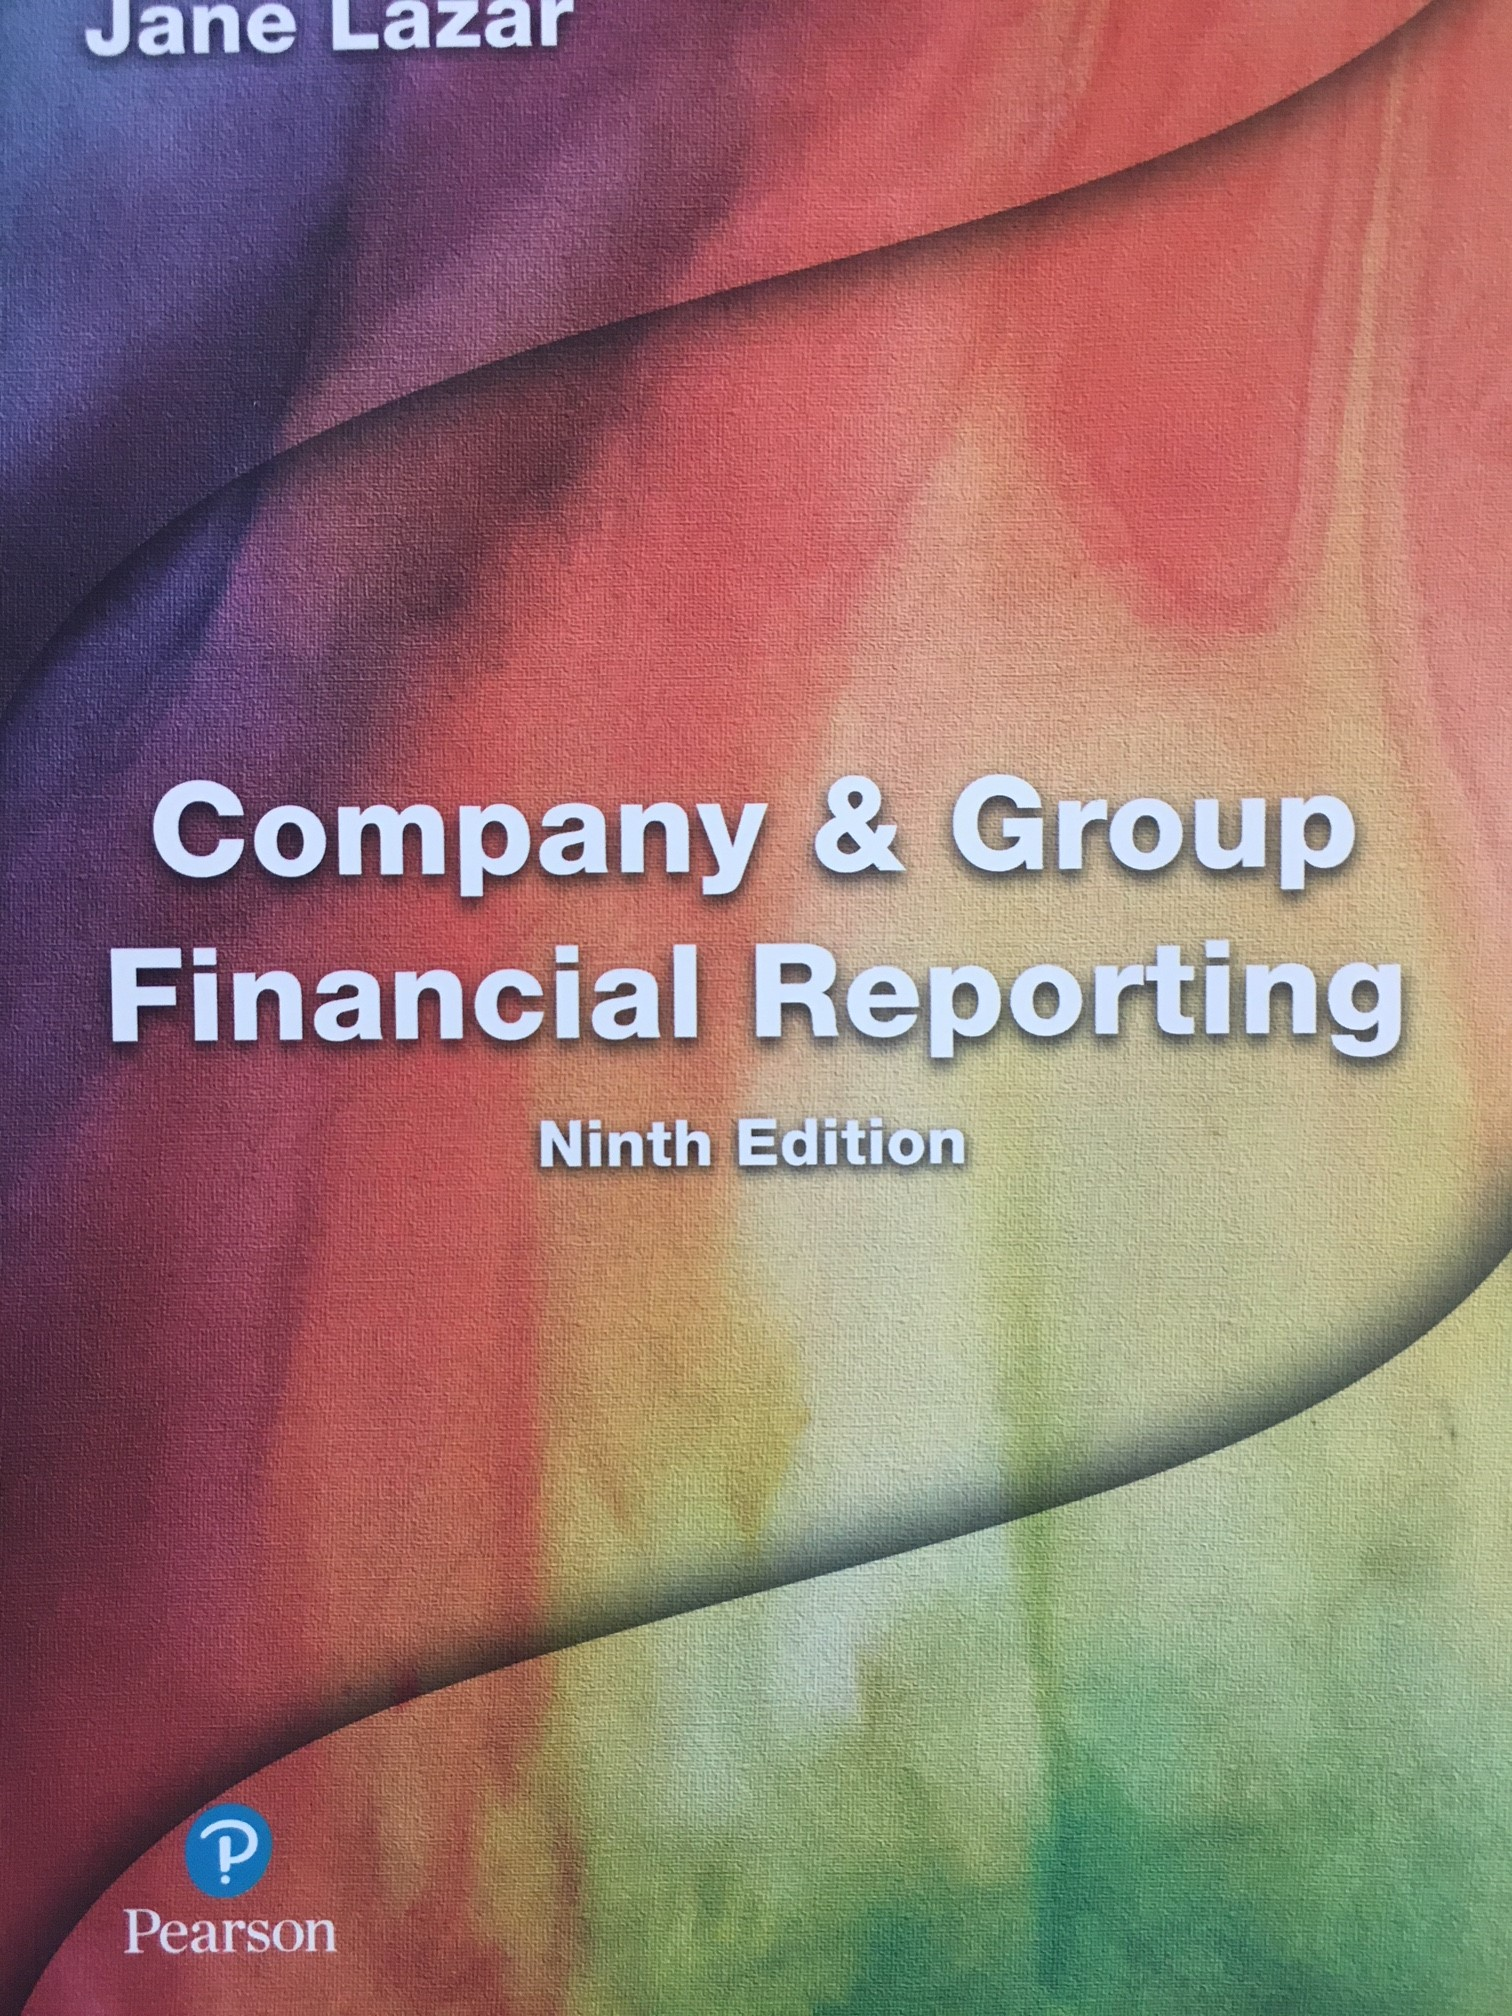 company and group financial reporting 9th edition jane lazar answer